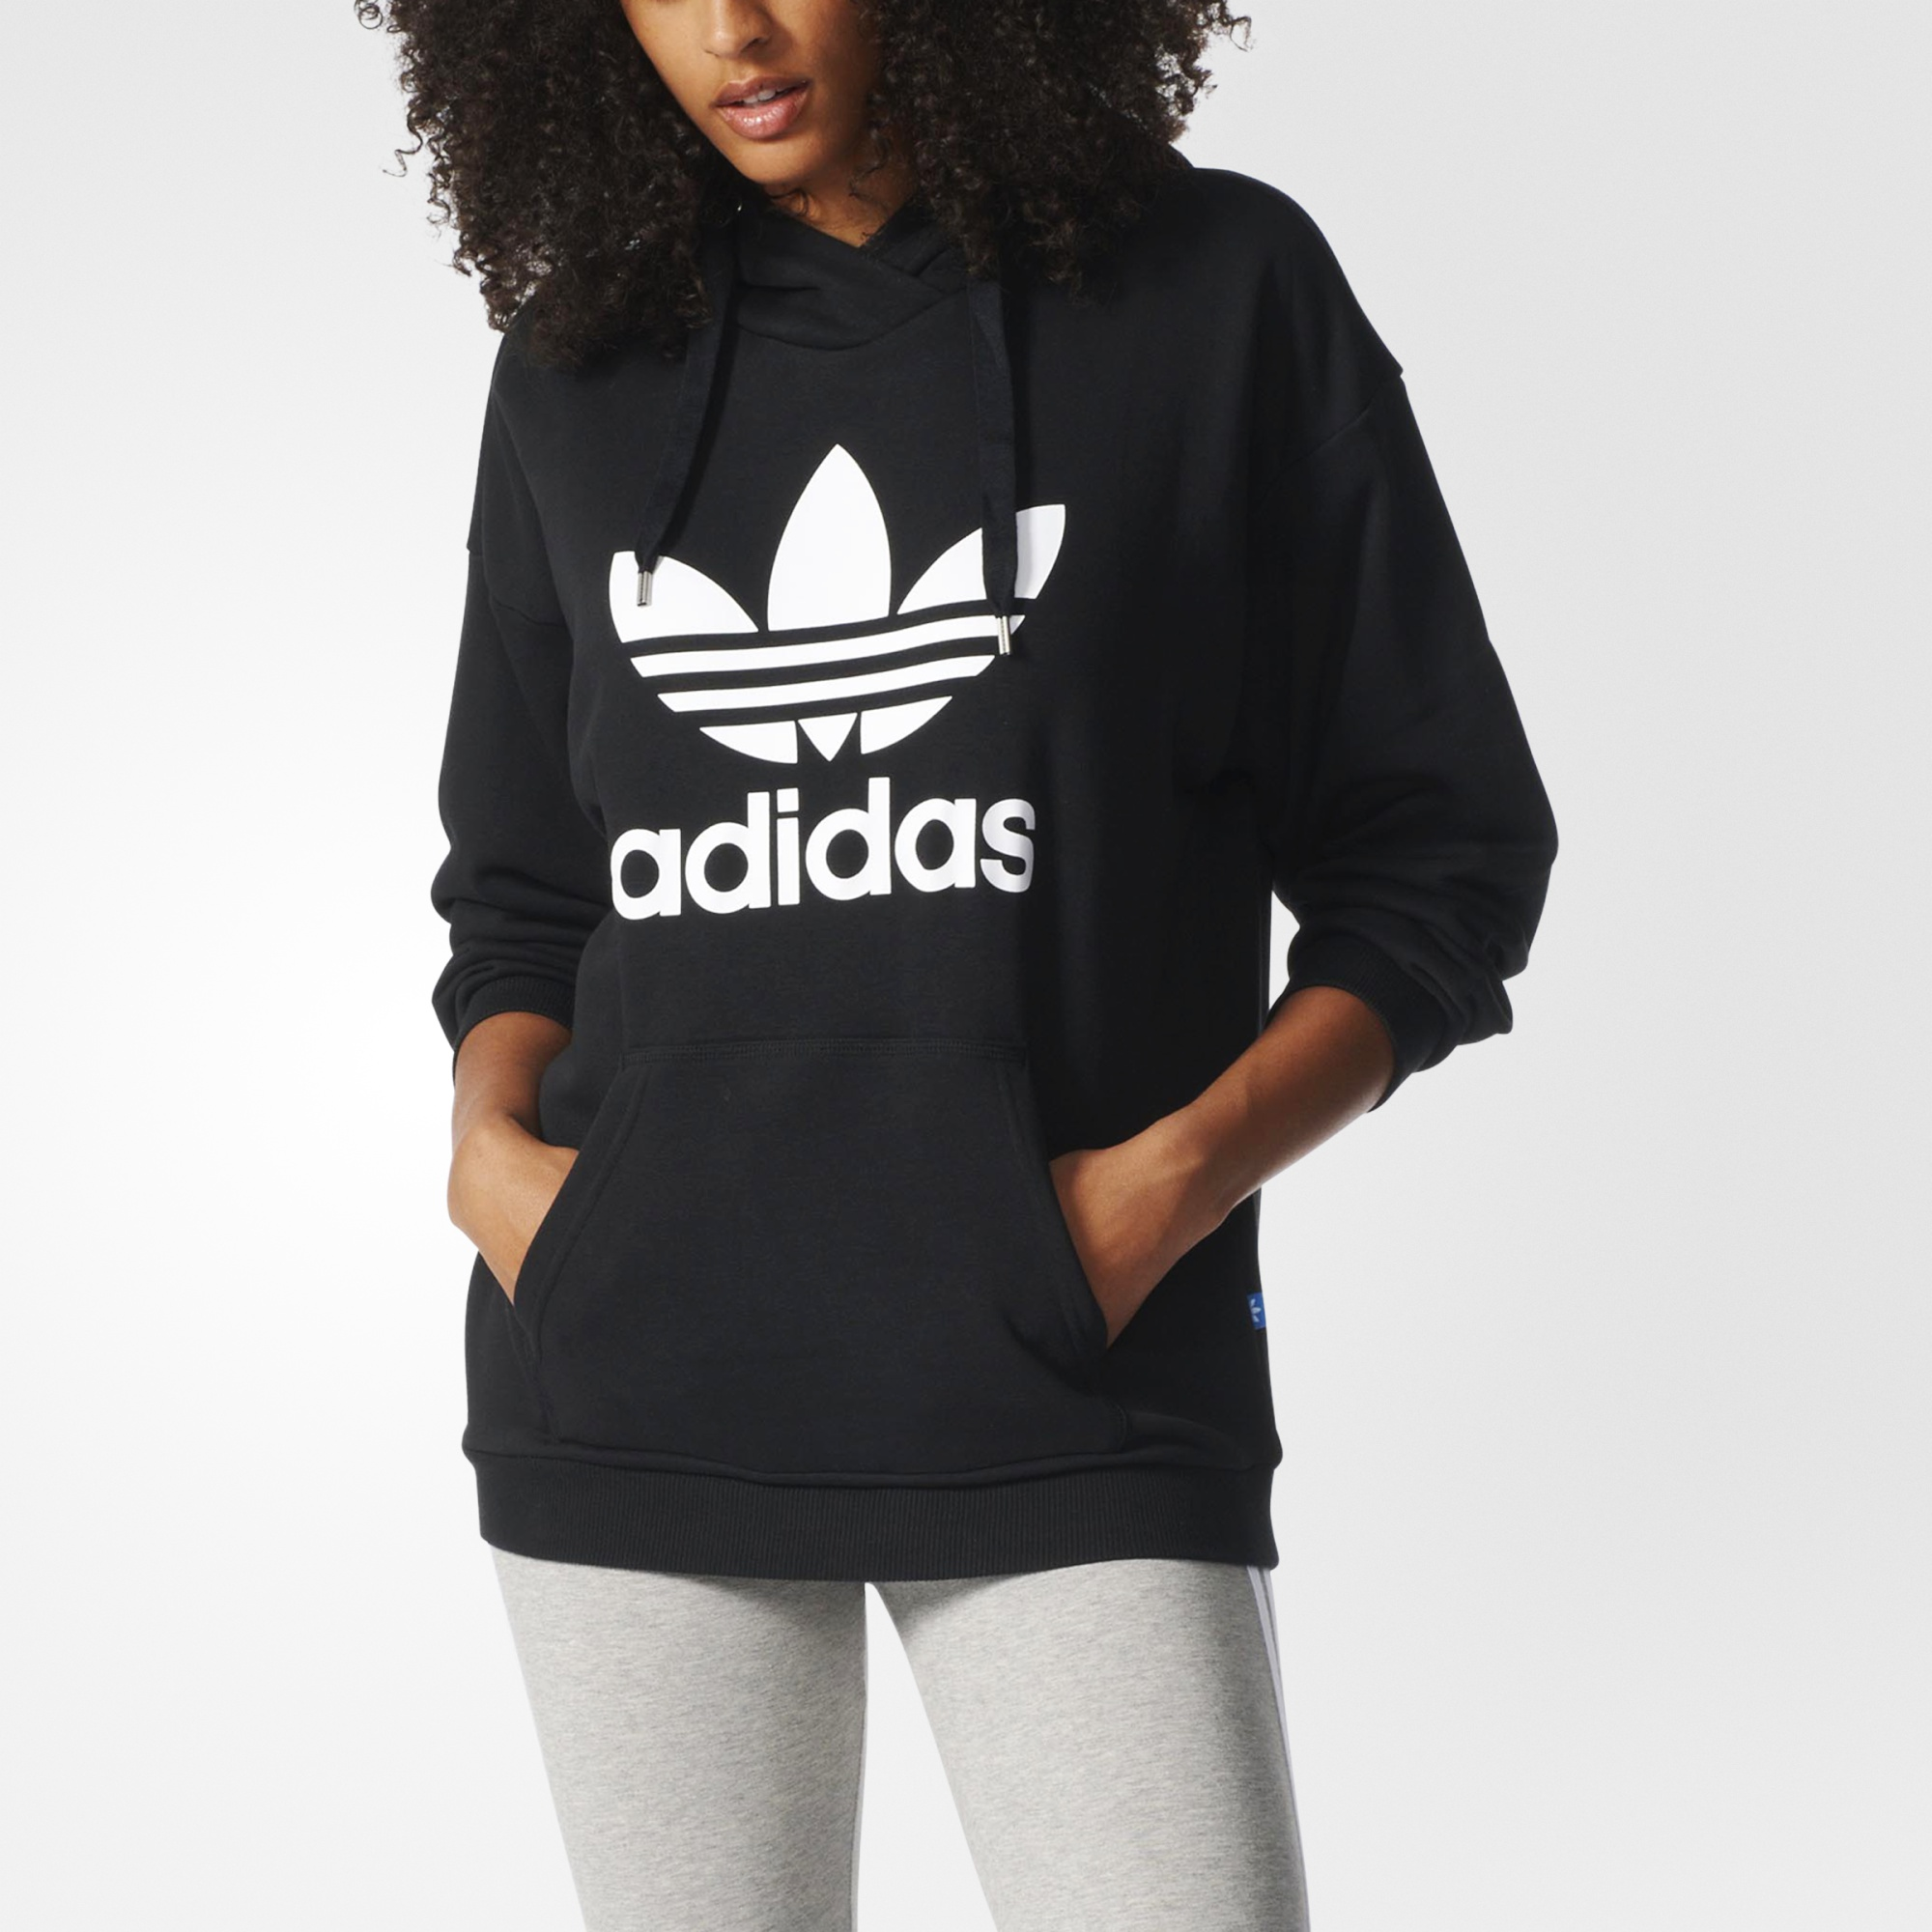 Adidas sweatshirt – made of pure cotton and other high ...